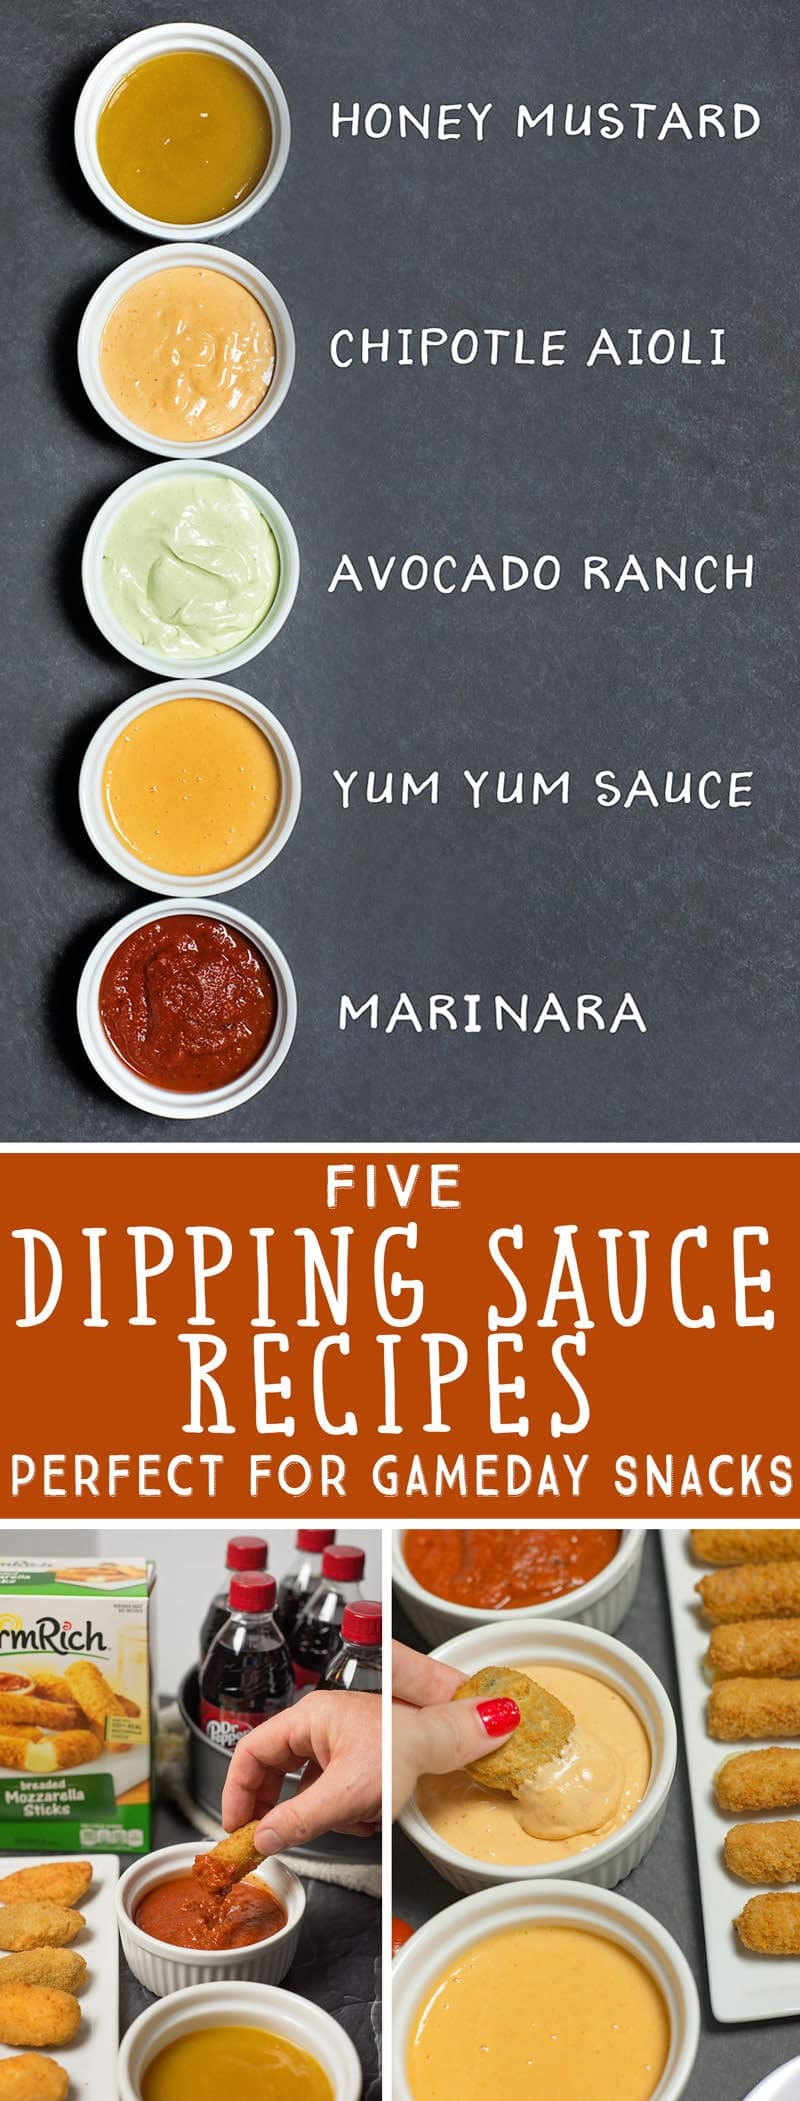 5 Easy Dipping Sauce Recipes and ideas that can be made in 5 minutes to complement almost every appetizer you're serving for gameday!